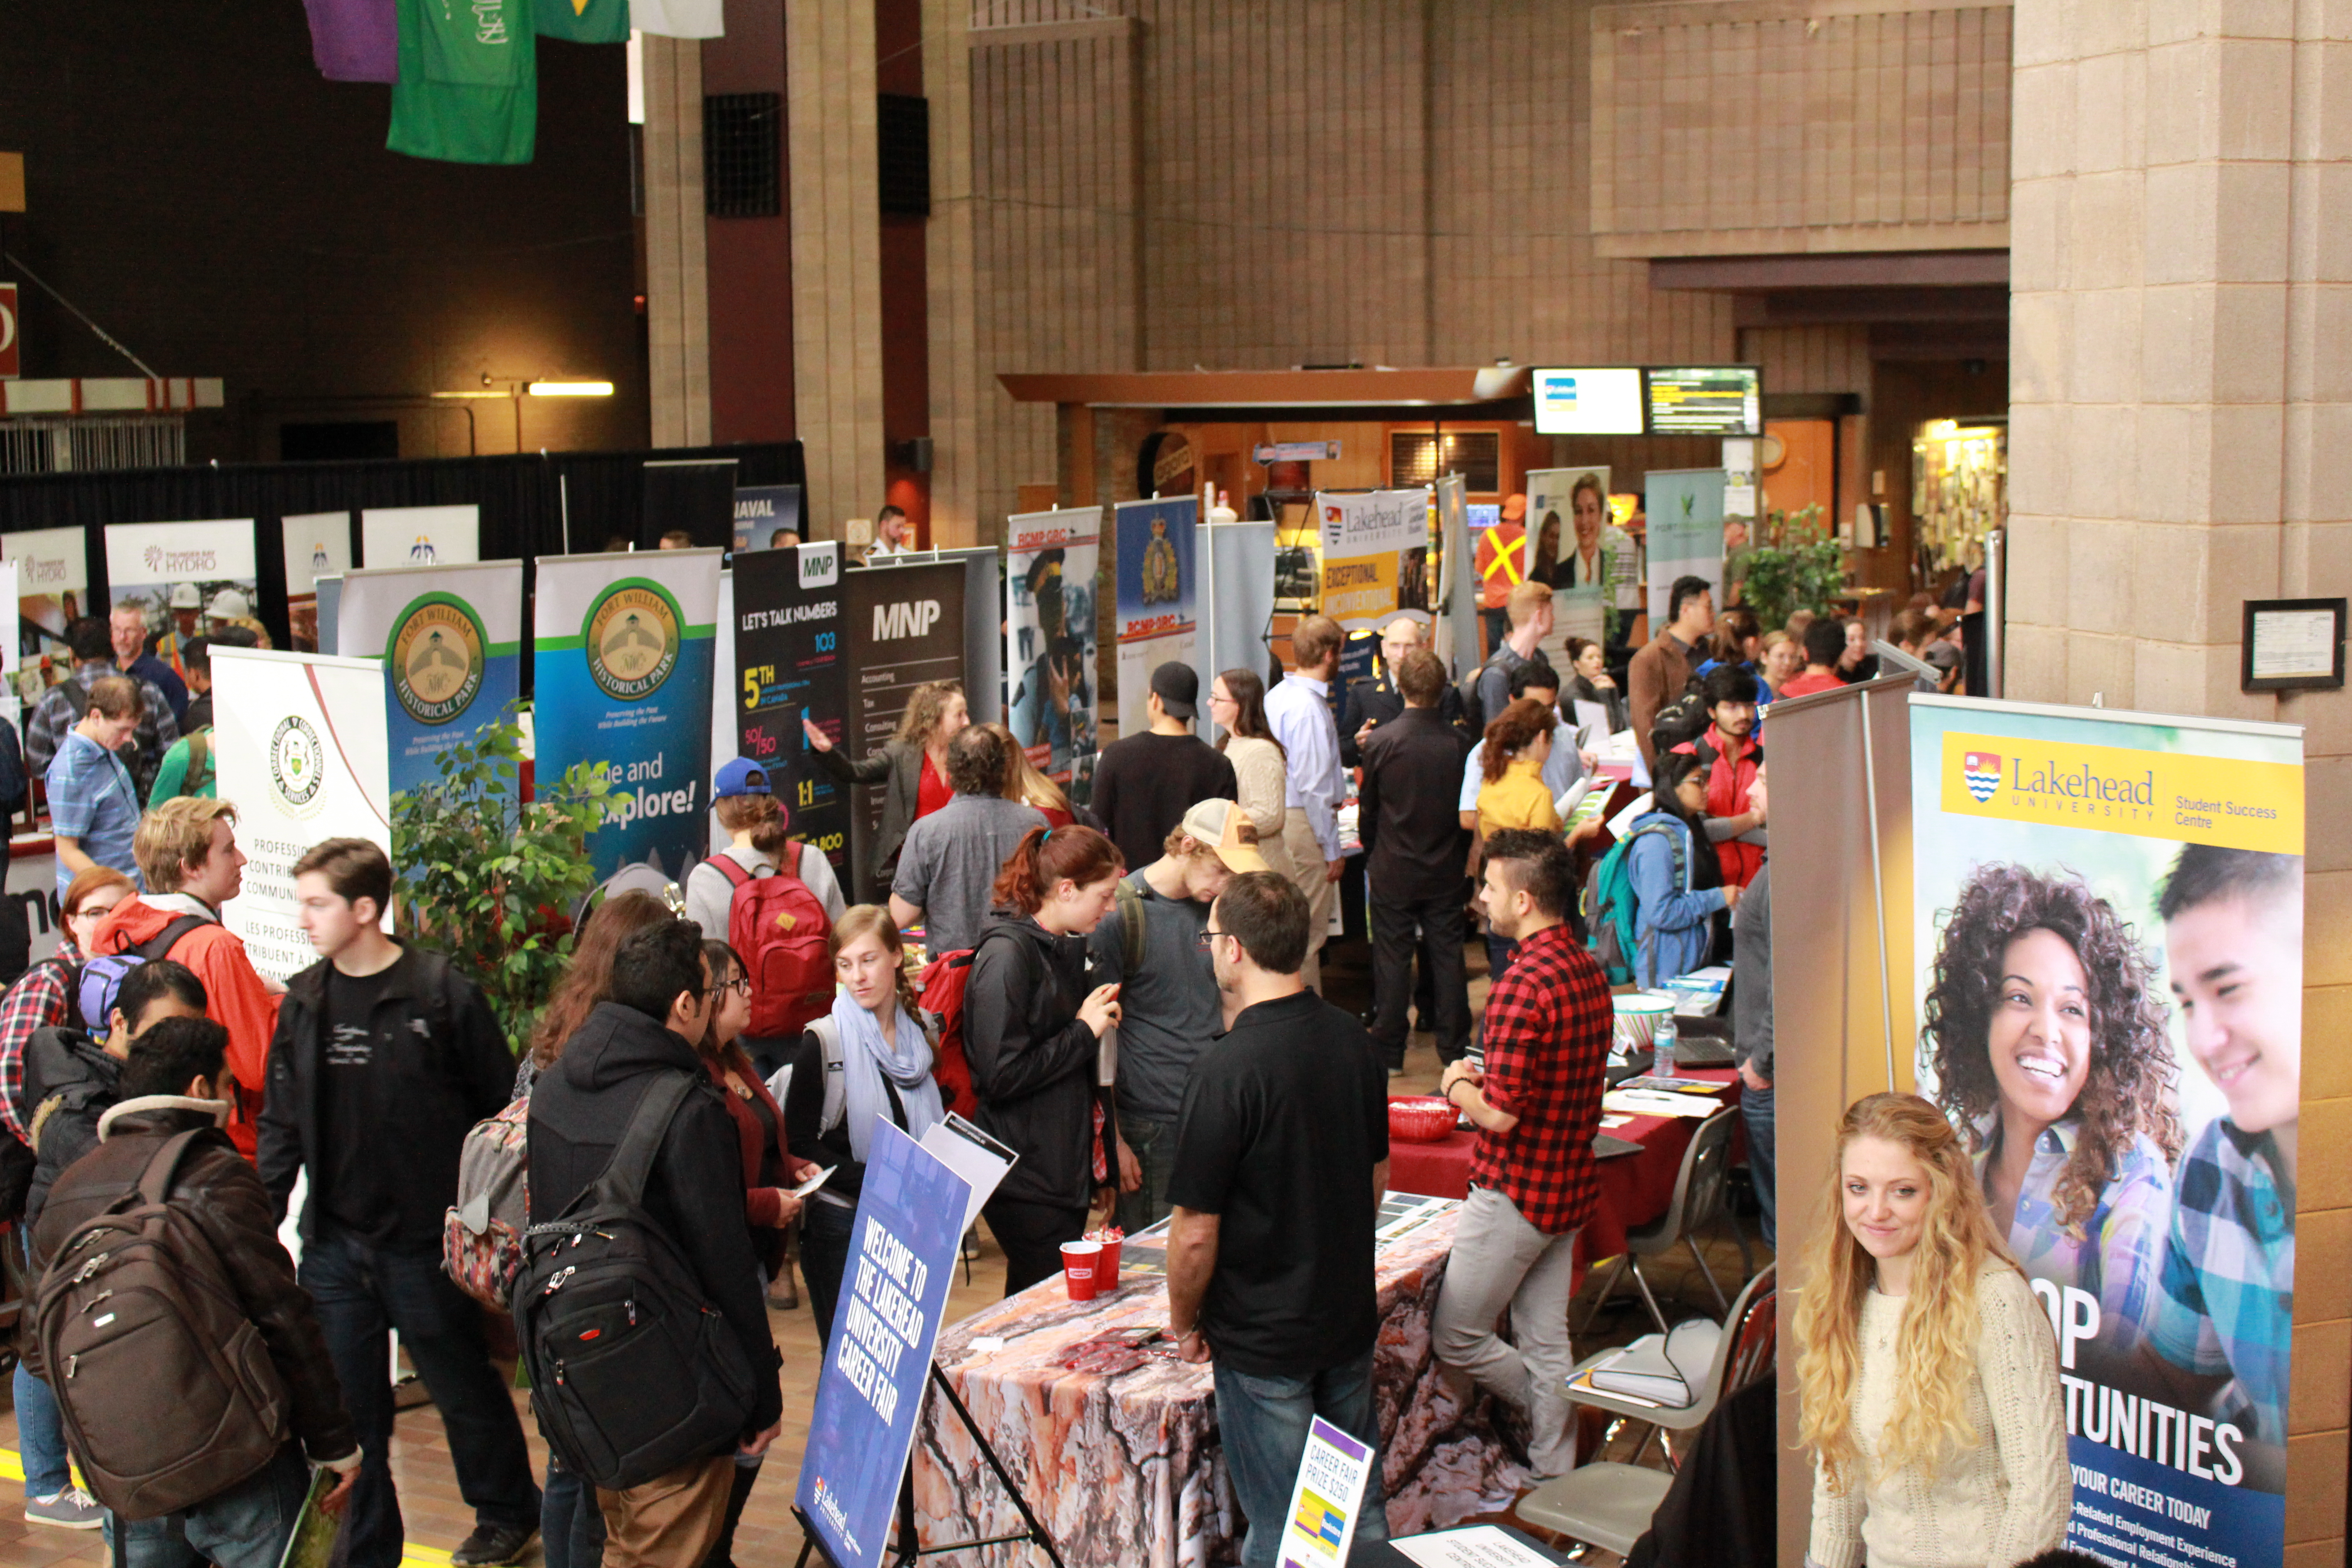 Career Fair Near Me 2020.Career Fairs Lakehead University